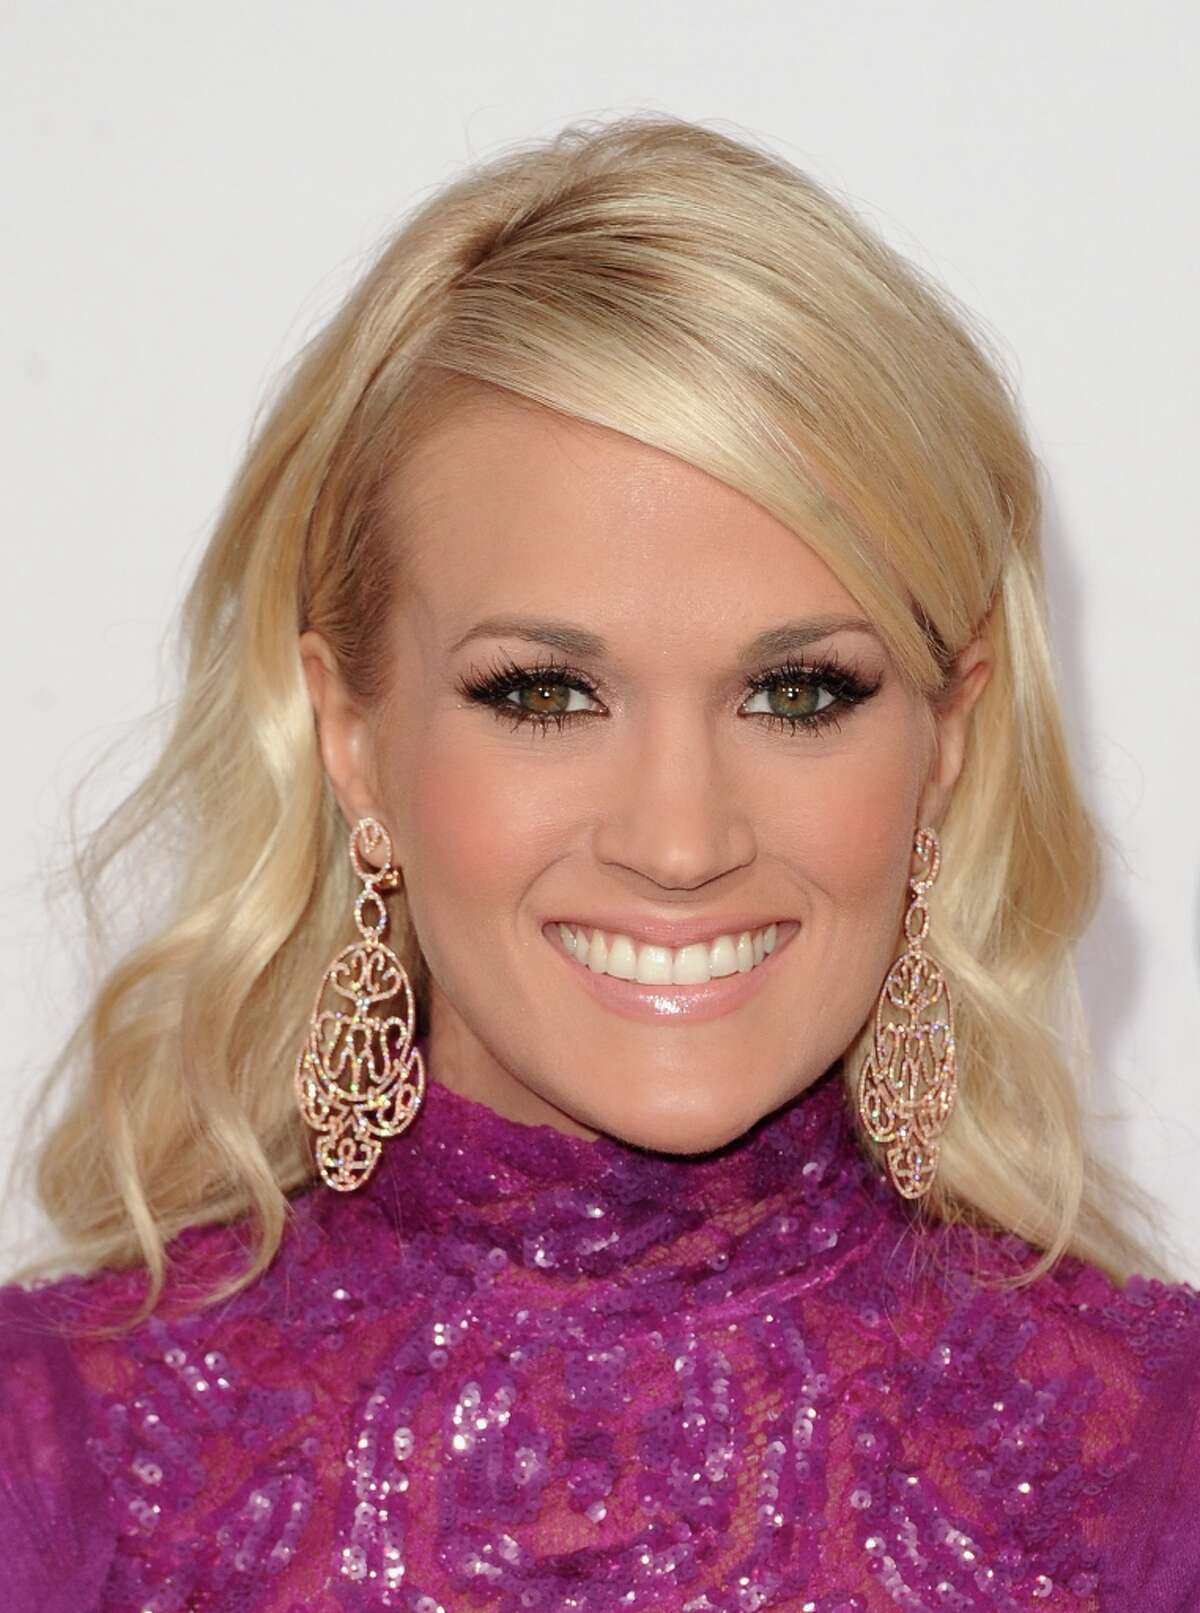 The stars - from Taylor Swift and Carrie Underwood to Chris Brown and Pink to a newly single Justin Bieber and his mom - walked the red carpet at the American Music Awards. Short minis flashing lots of leg and gold and yellow dresses are some of the looks that dominated. Take at peek. Here, singer Carrie Underwood attends the 40th American Music Awards held at Nokia Theatre L.A. Live on November 18, 2012 in Los Angeles, California. (Photo by Jason Merritt/Getty Images)